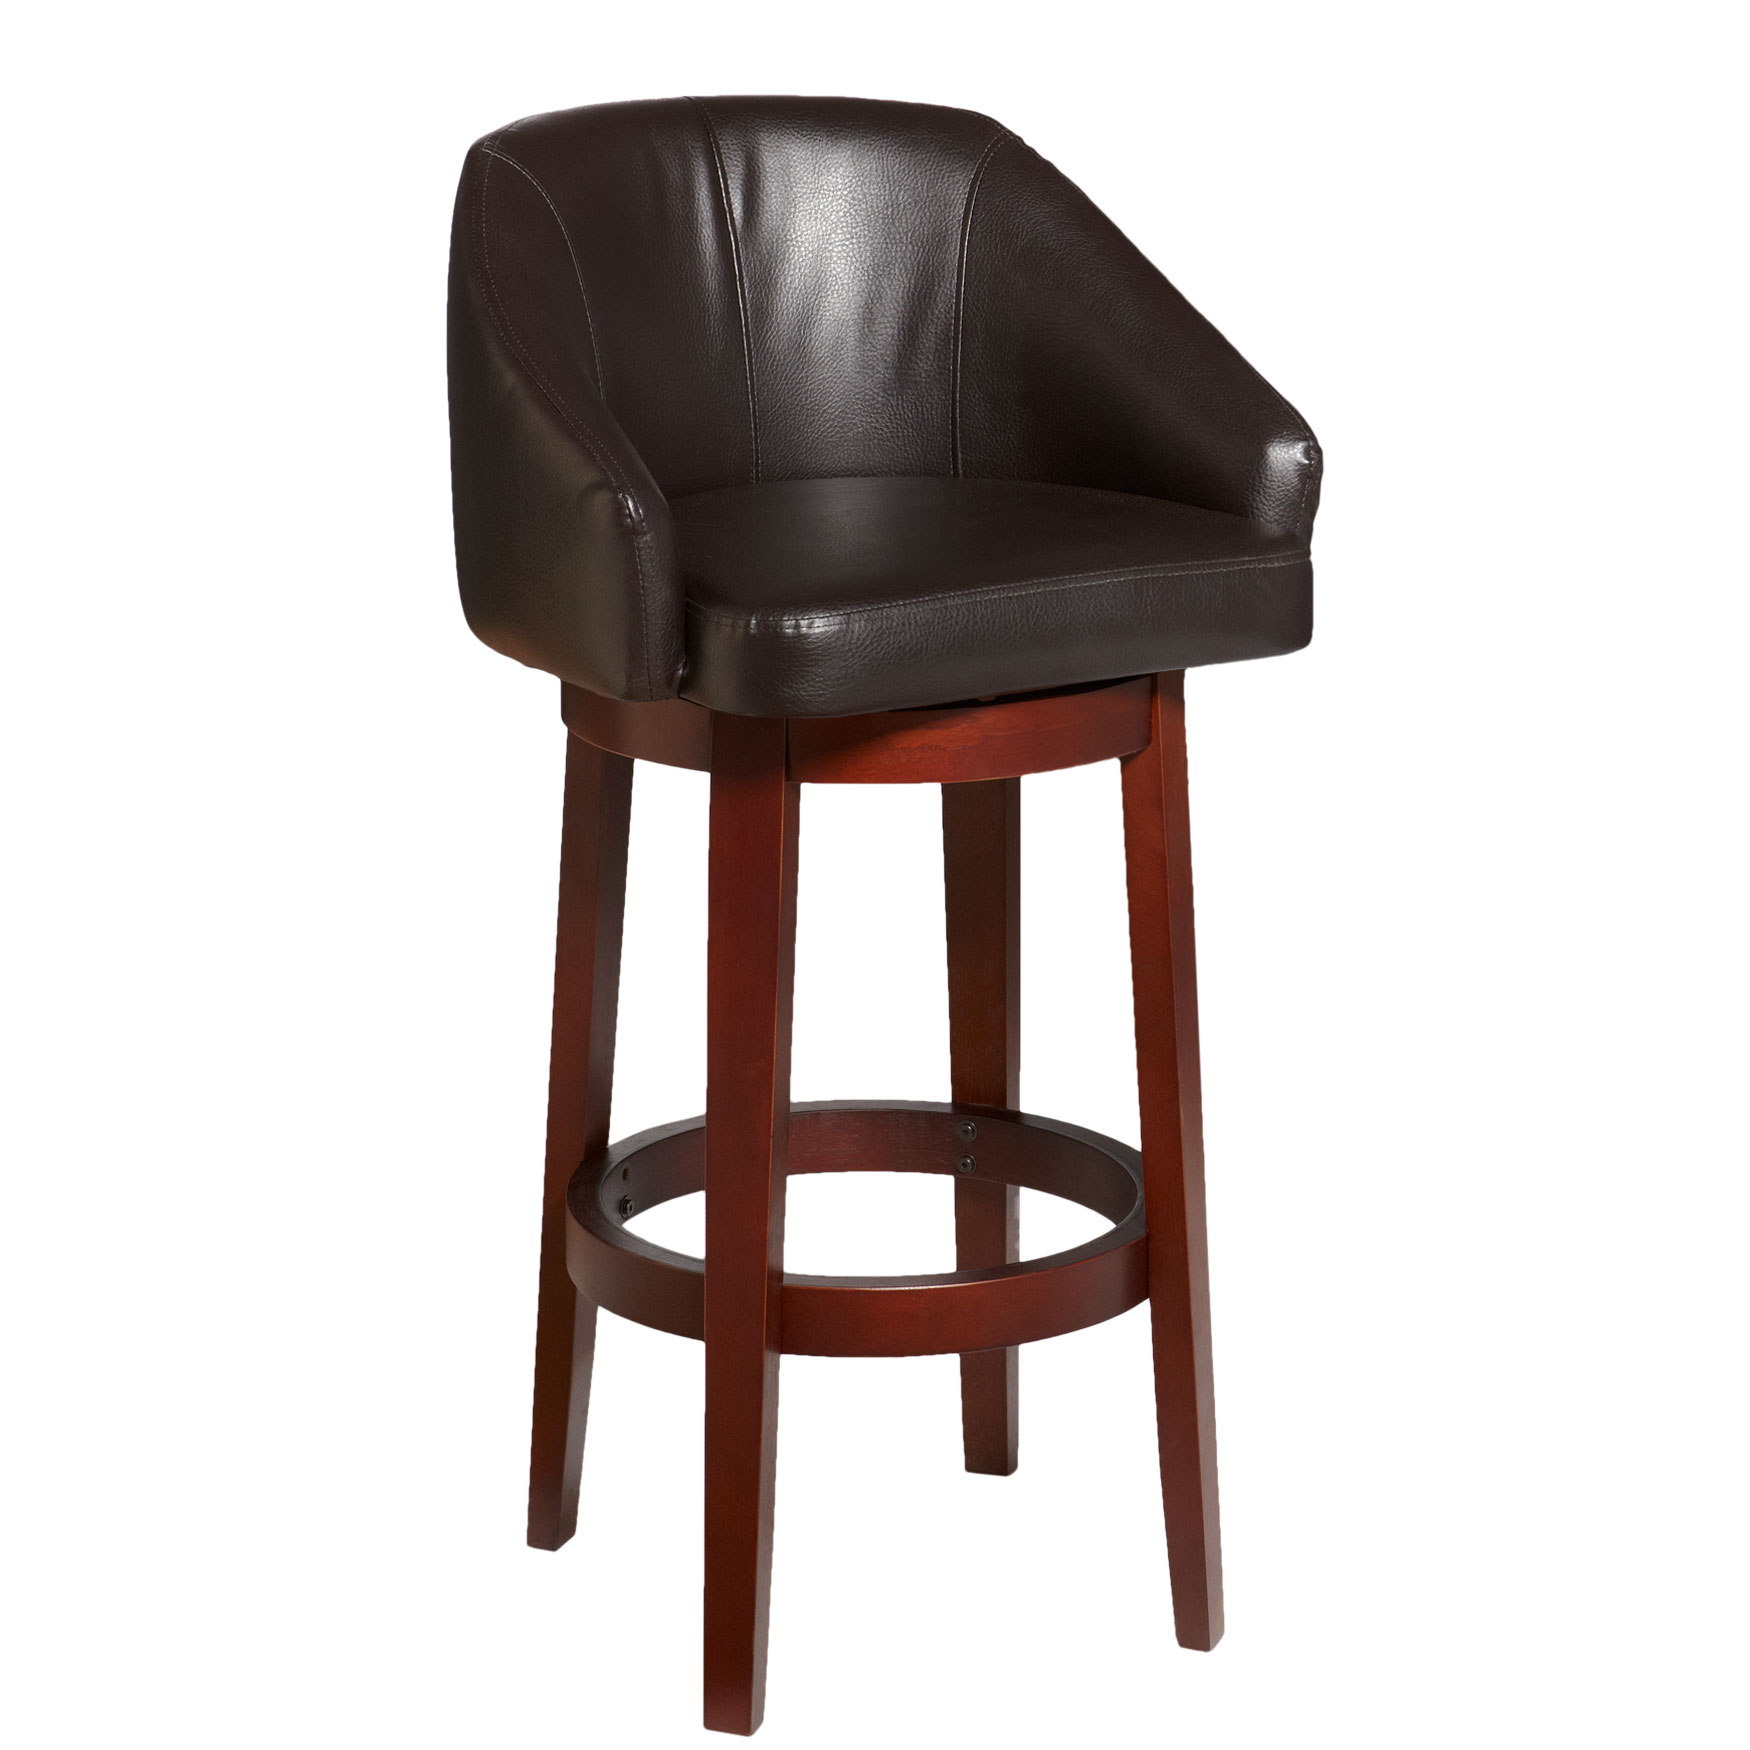 Bar And Stools For Home Nina Extra Wide Swivel Bar Stool Plus Size Bar Stools